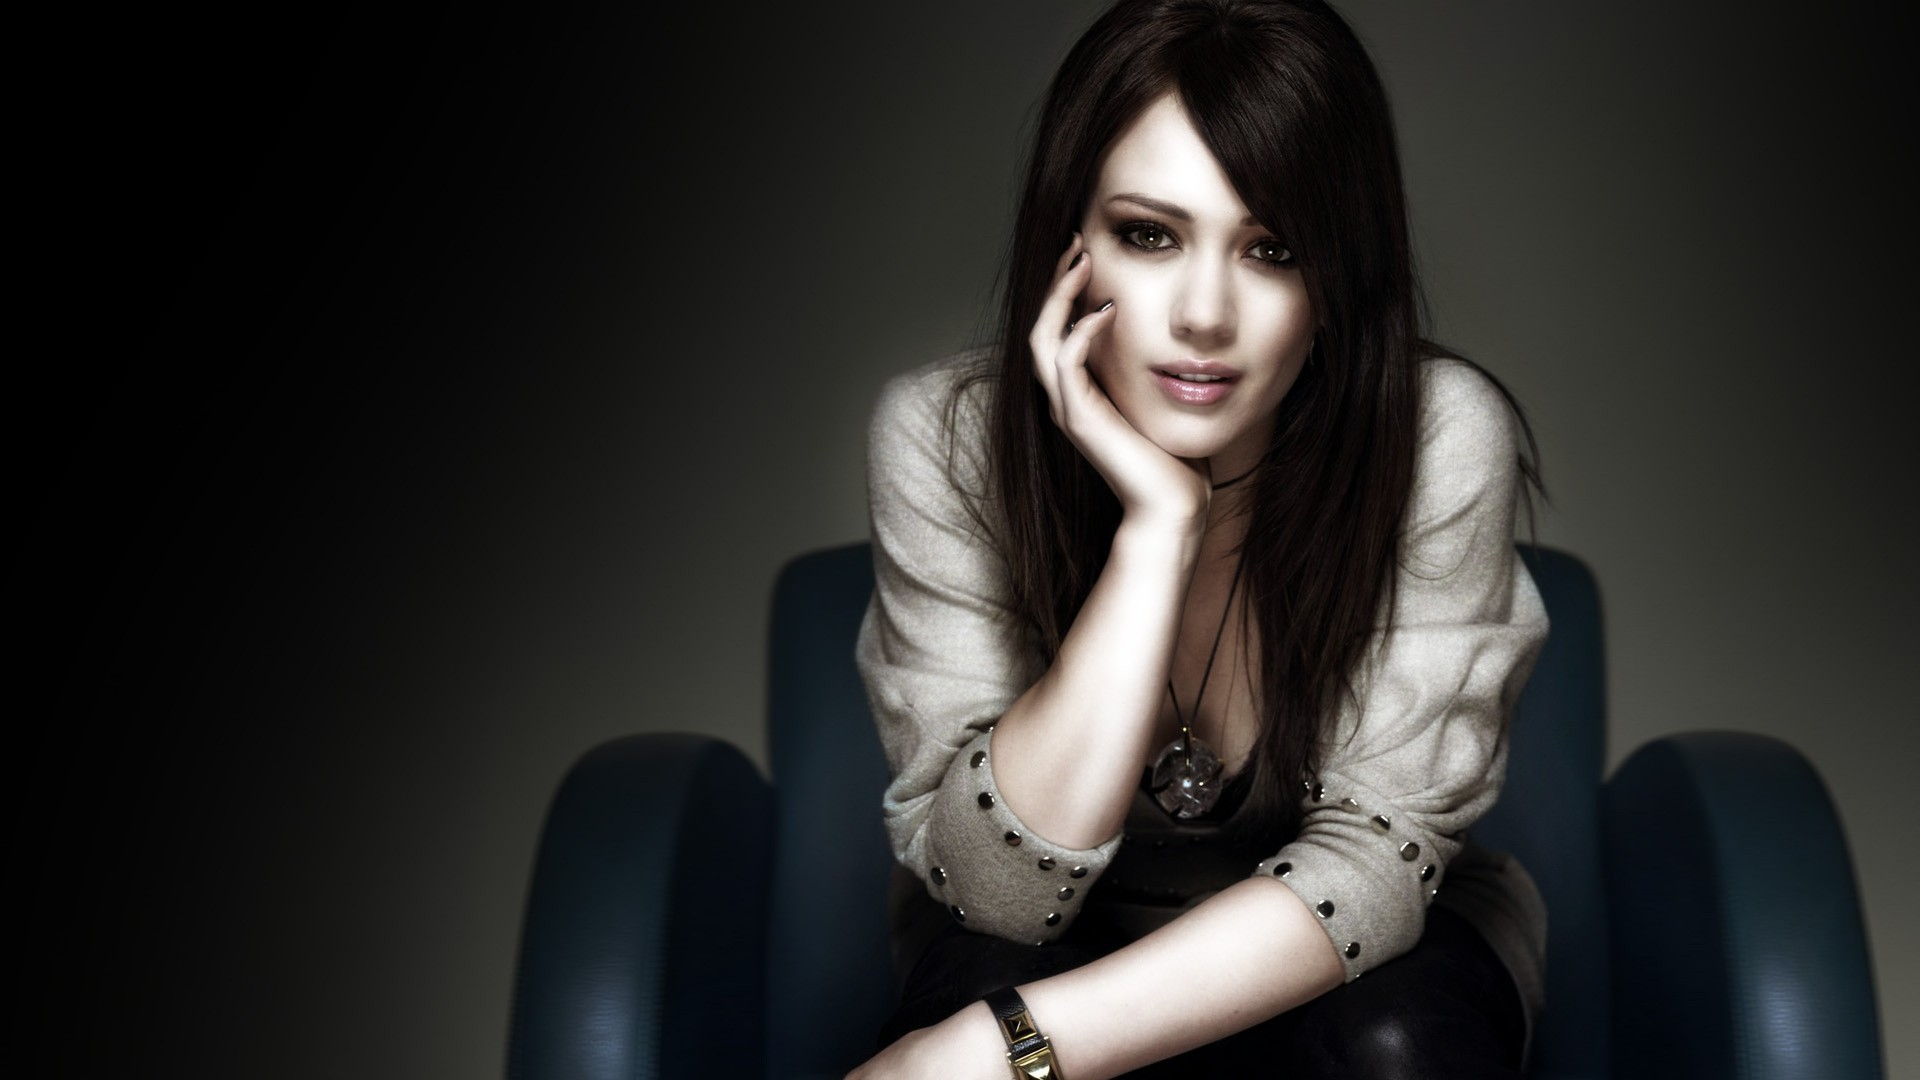 woman Hilary Duff singers HD Wallpaper